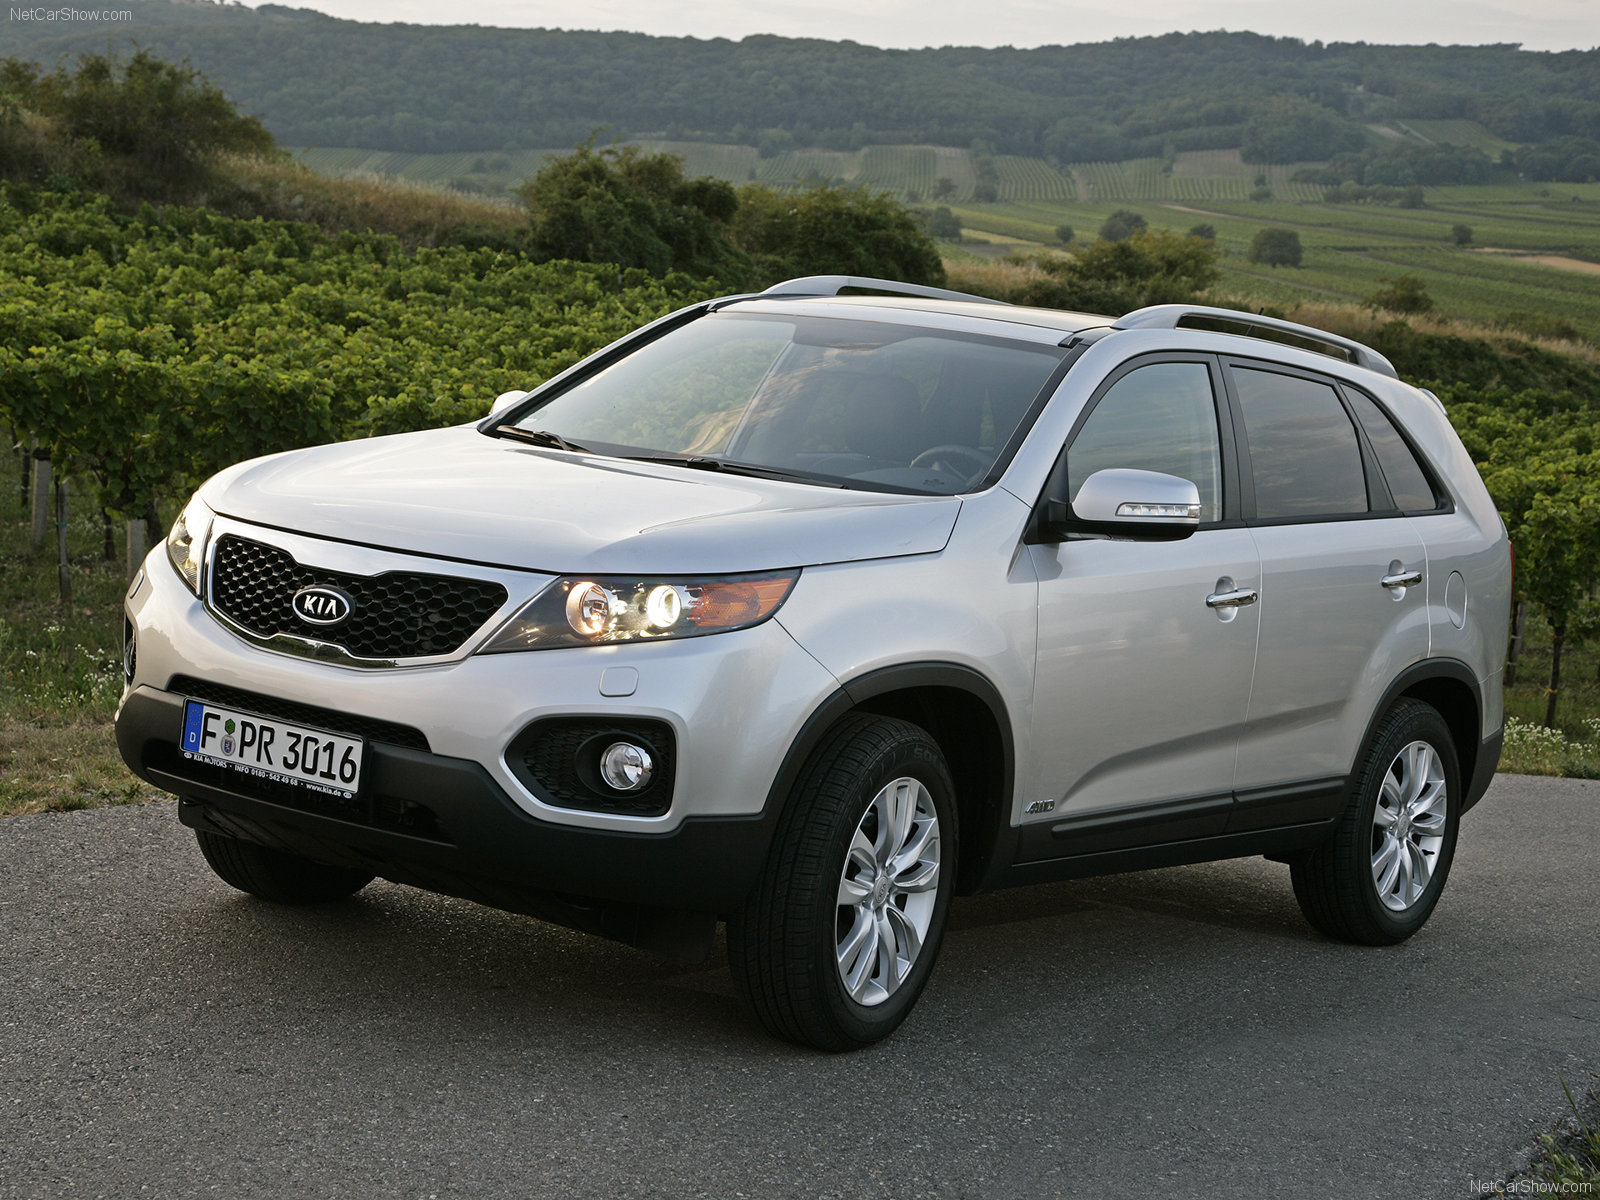 2010 Kia Sorento Photogallery Wallpapers